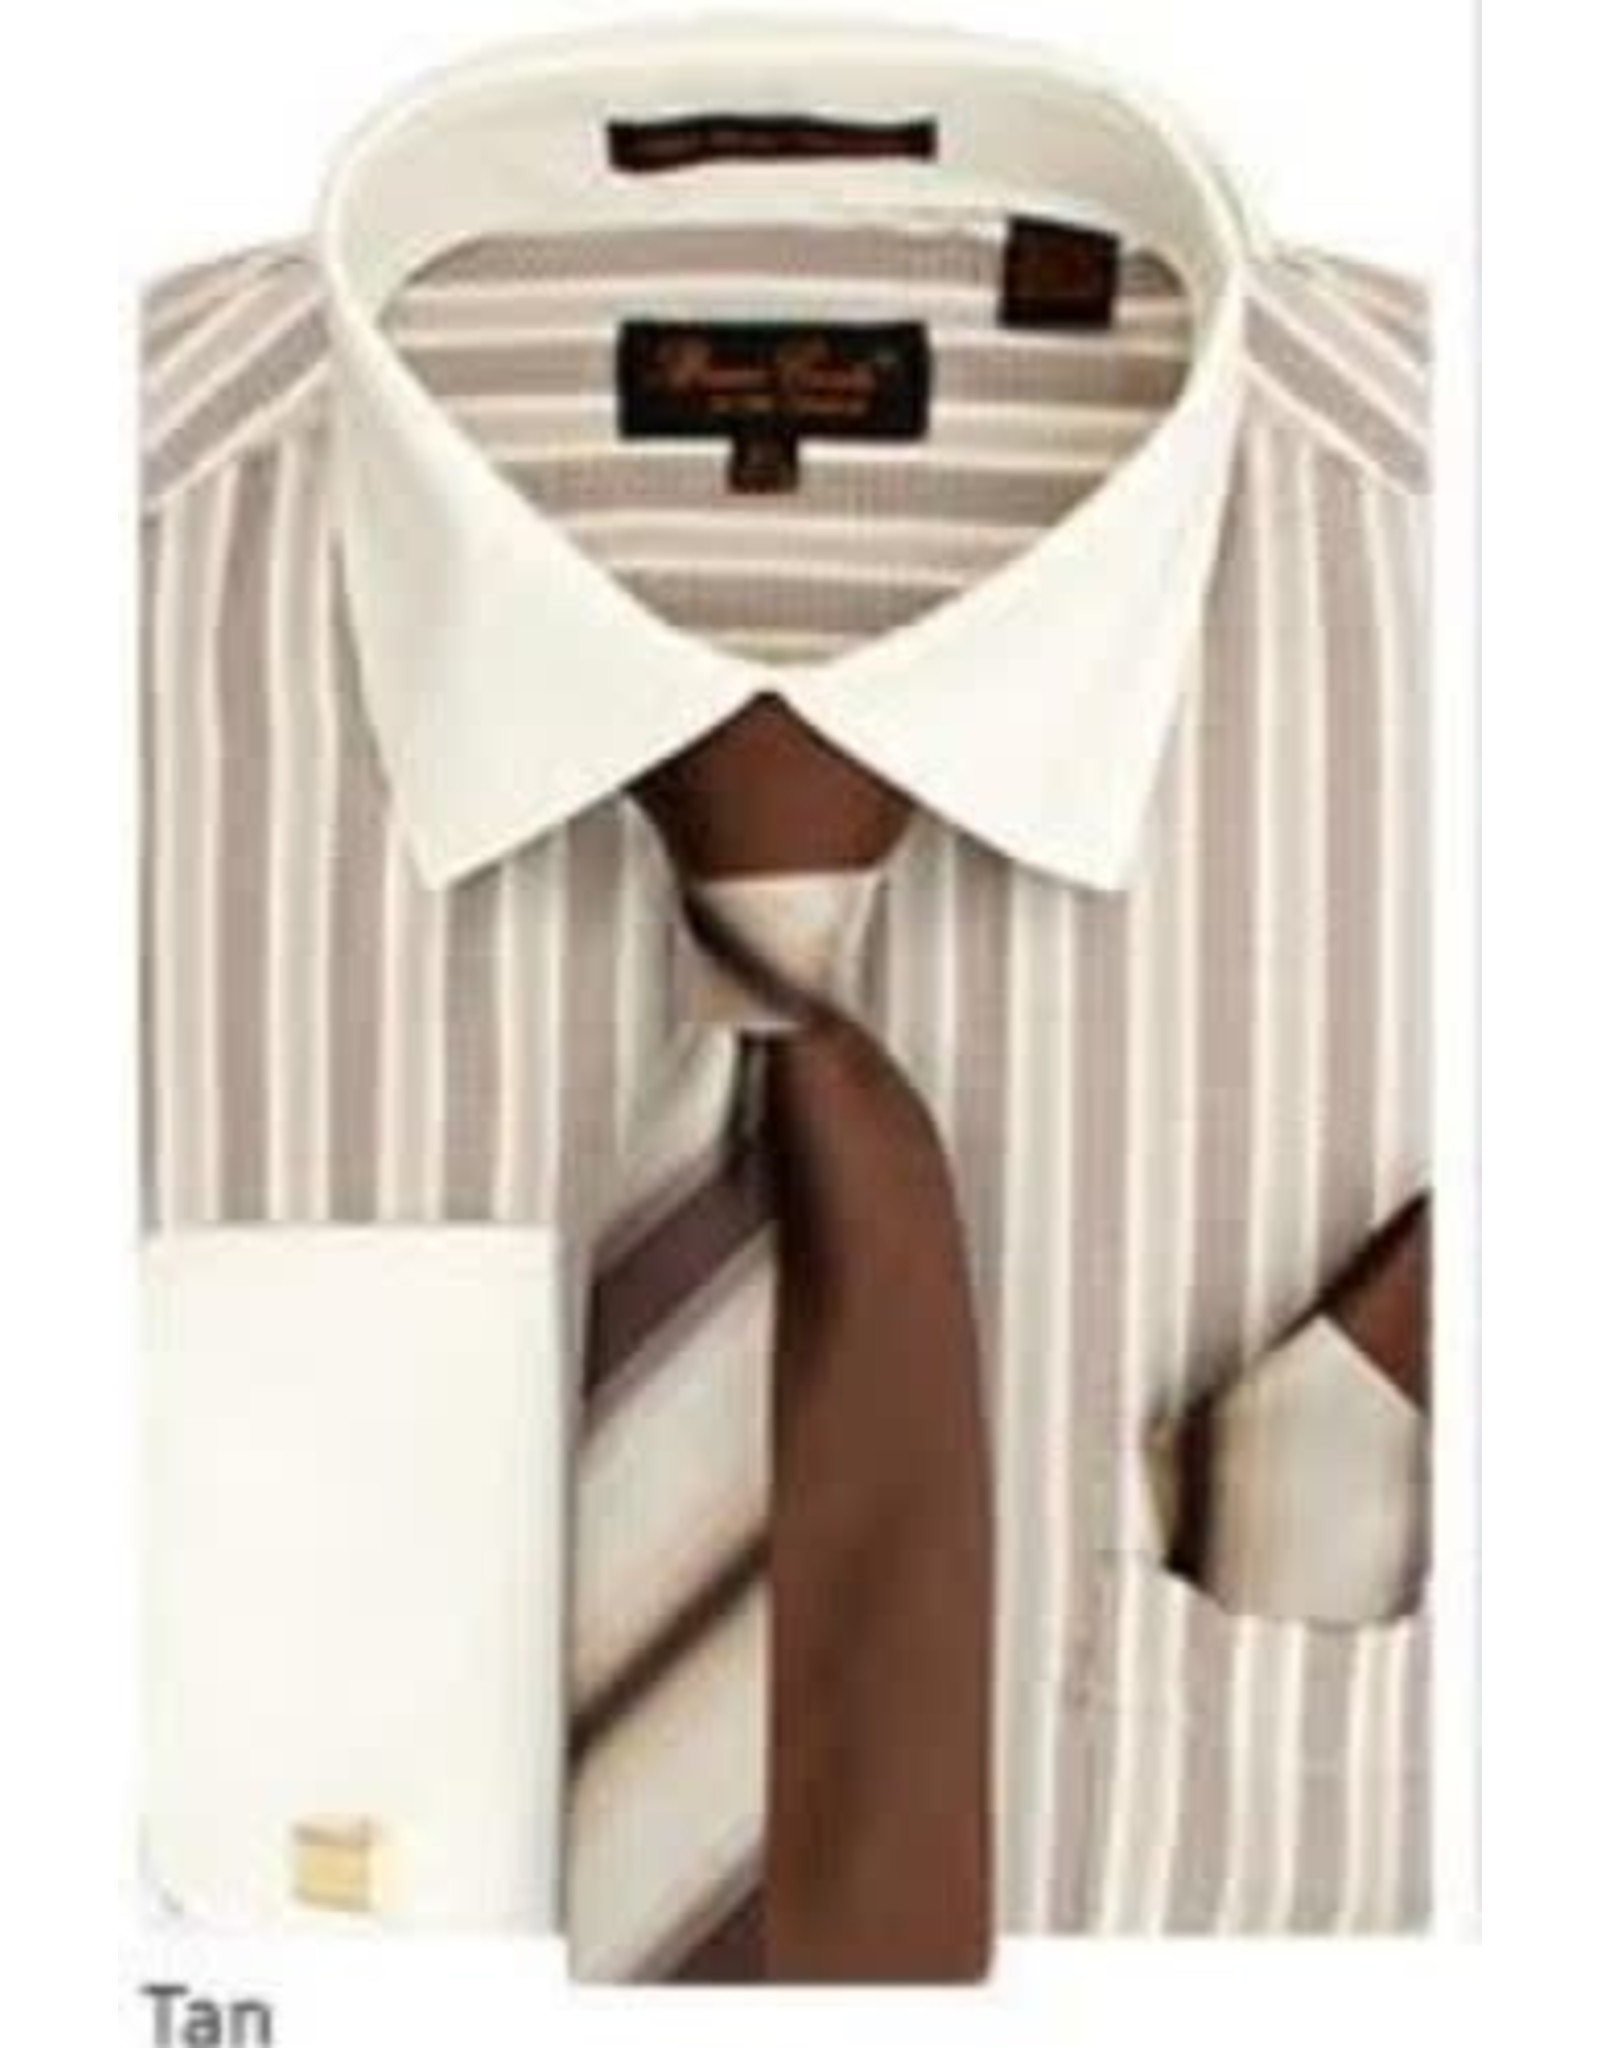 Bruno Conte Bruno Conte Shirt Set CS073 Tan